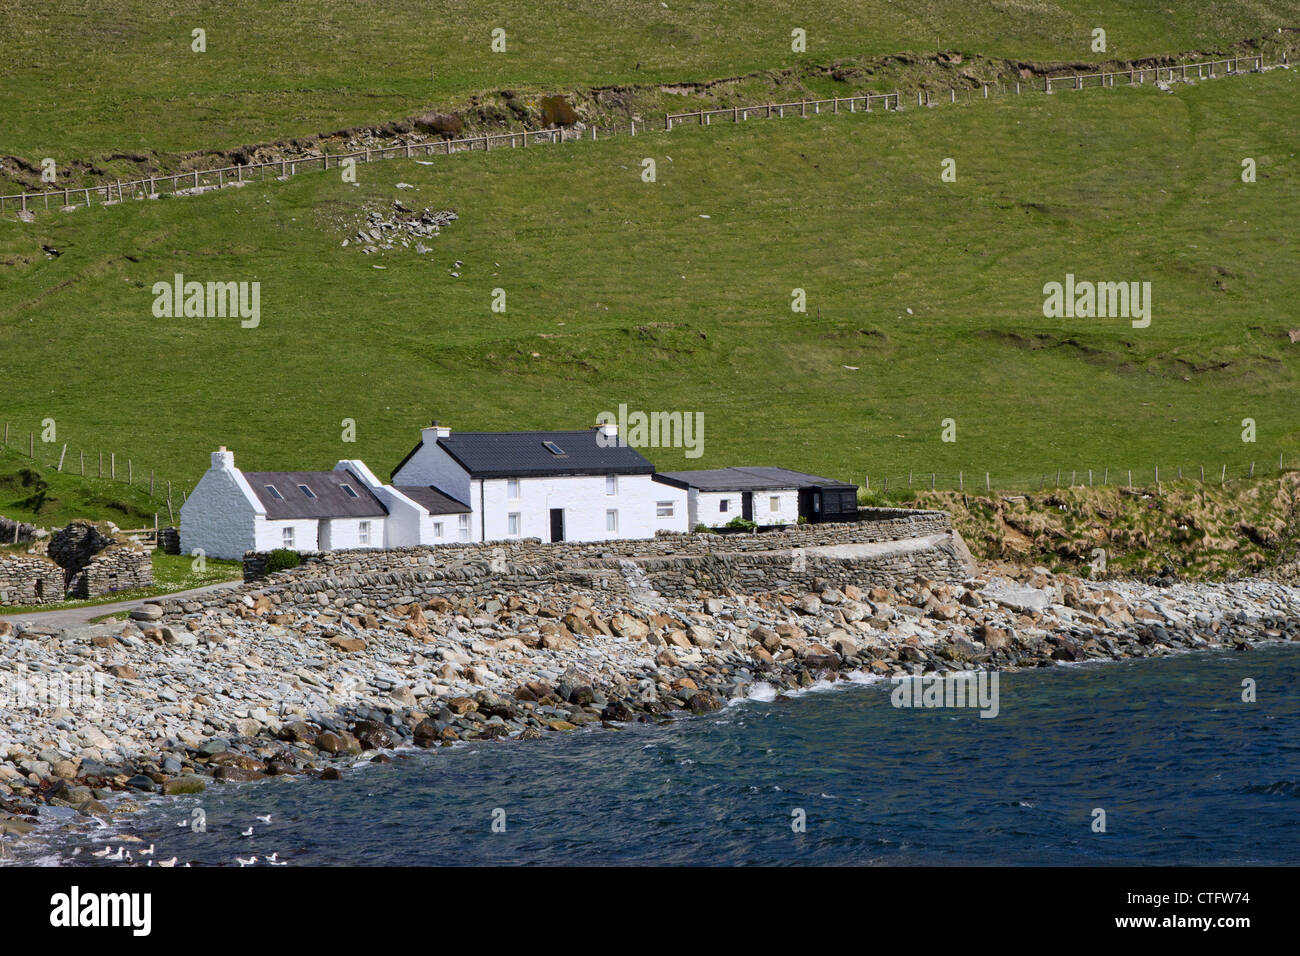 Norwick, Unst, Shetland Isles Photo Stock